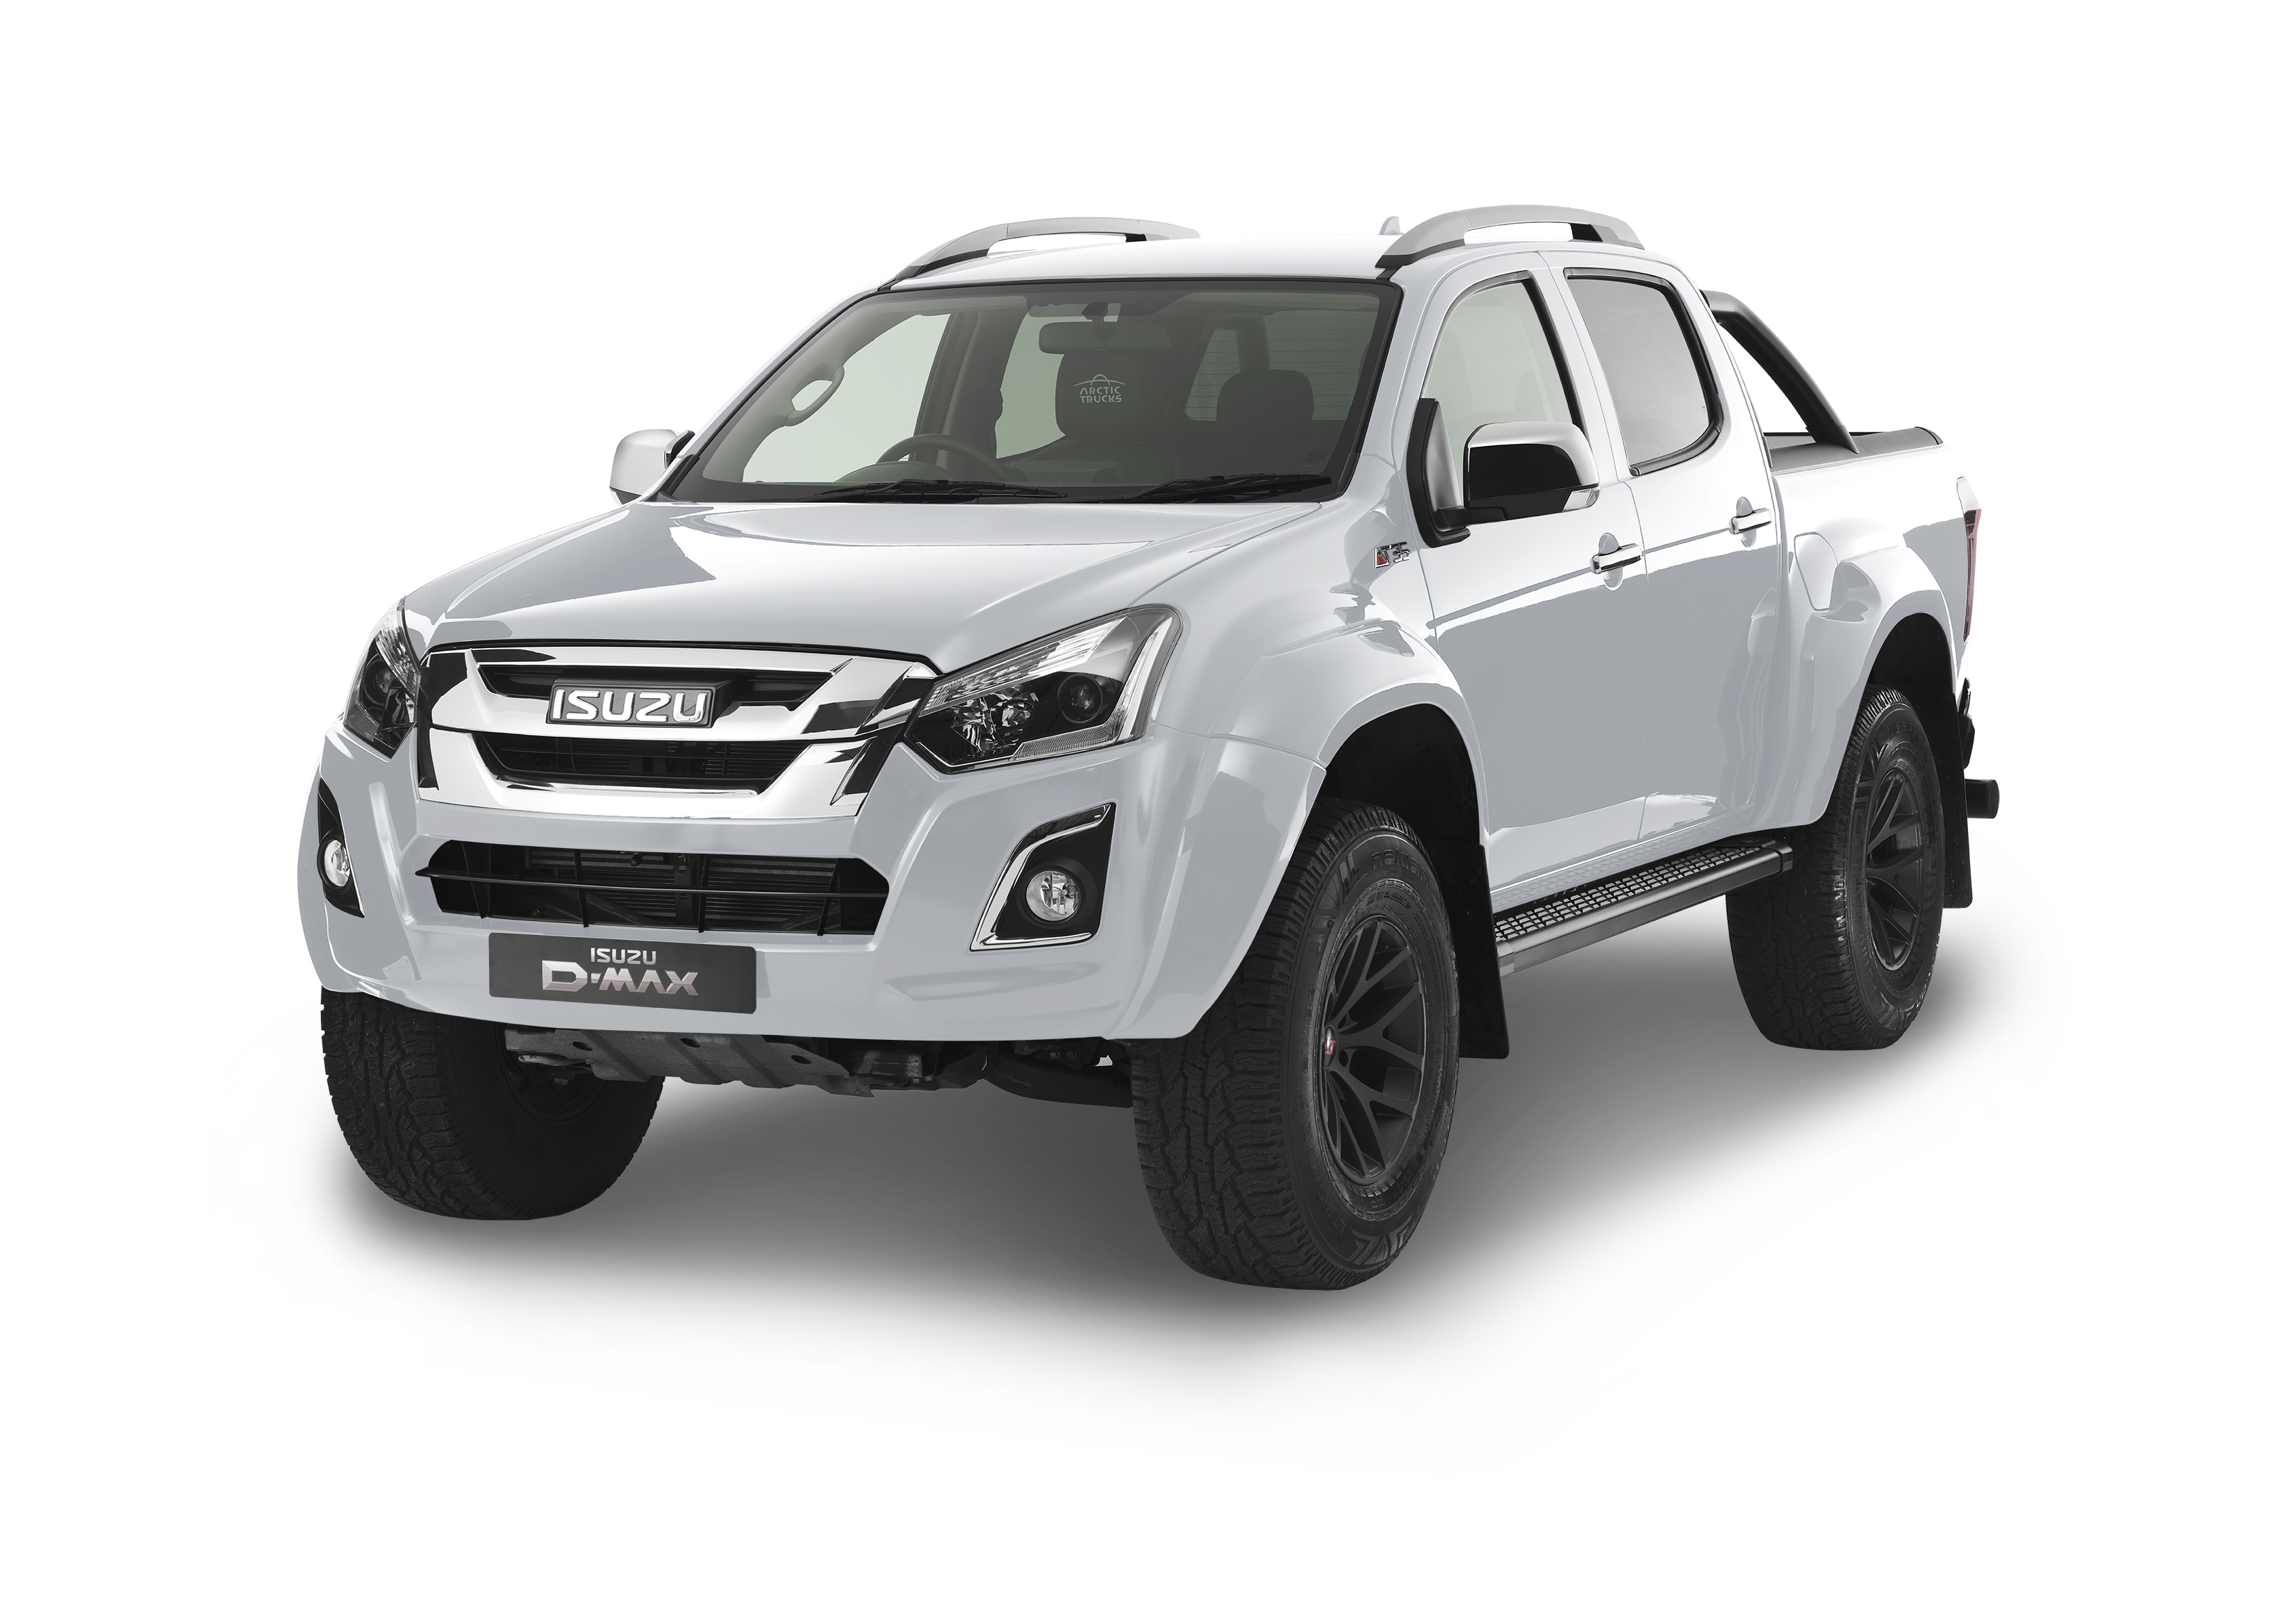 Front view of the Isuzu D-Max Arctic AT35 in white